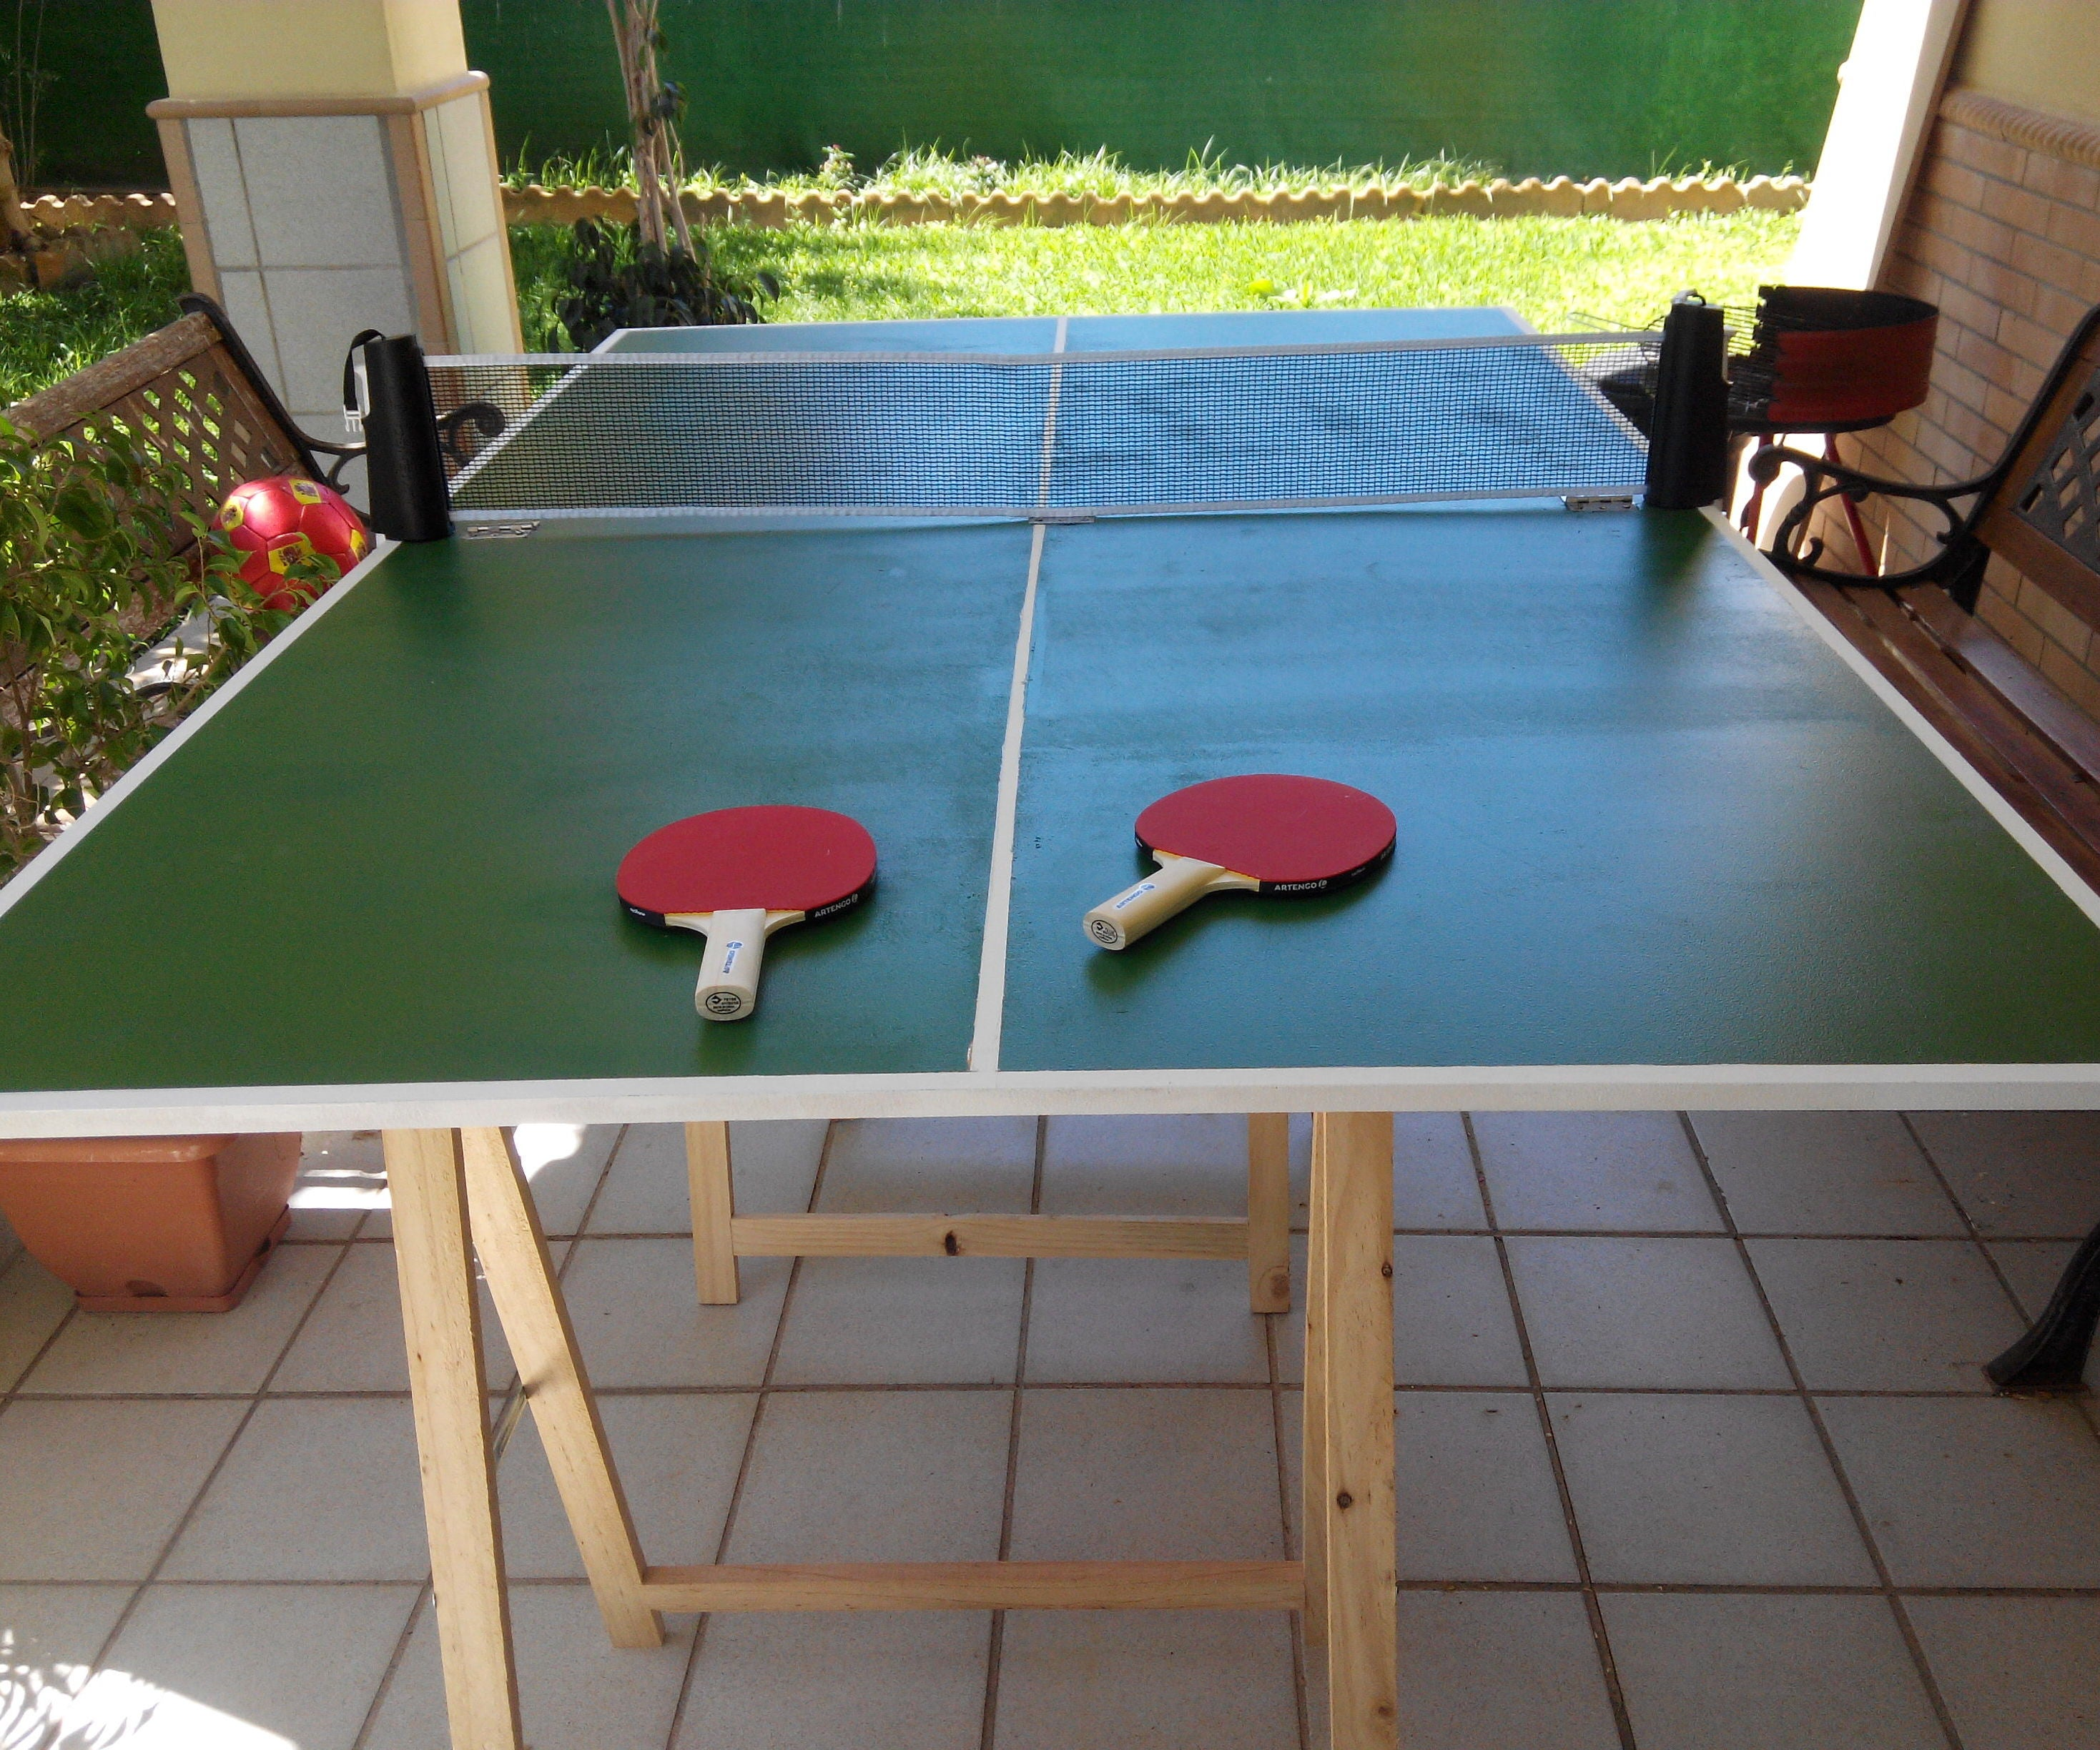 Easy Folding Ping-pong Table : 4 Steps (with Pictures) - Instructables